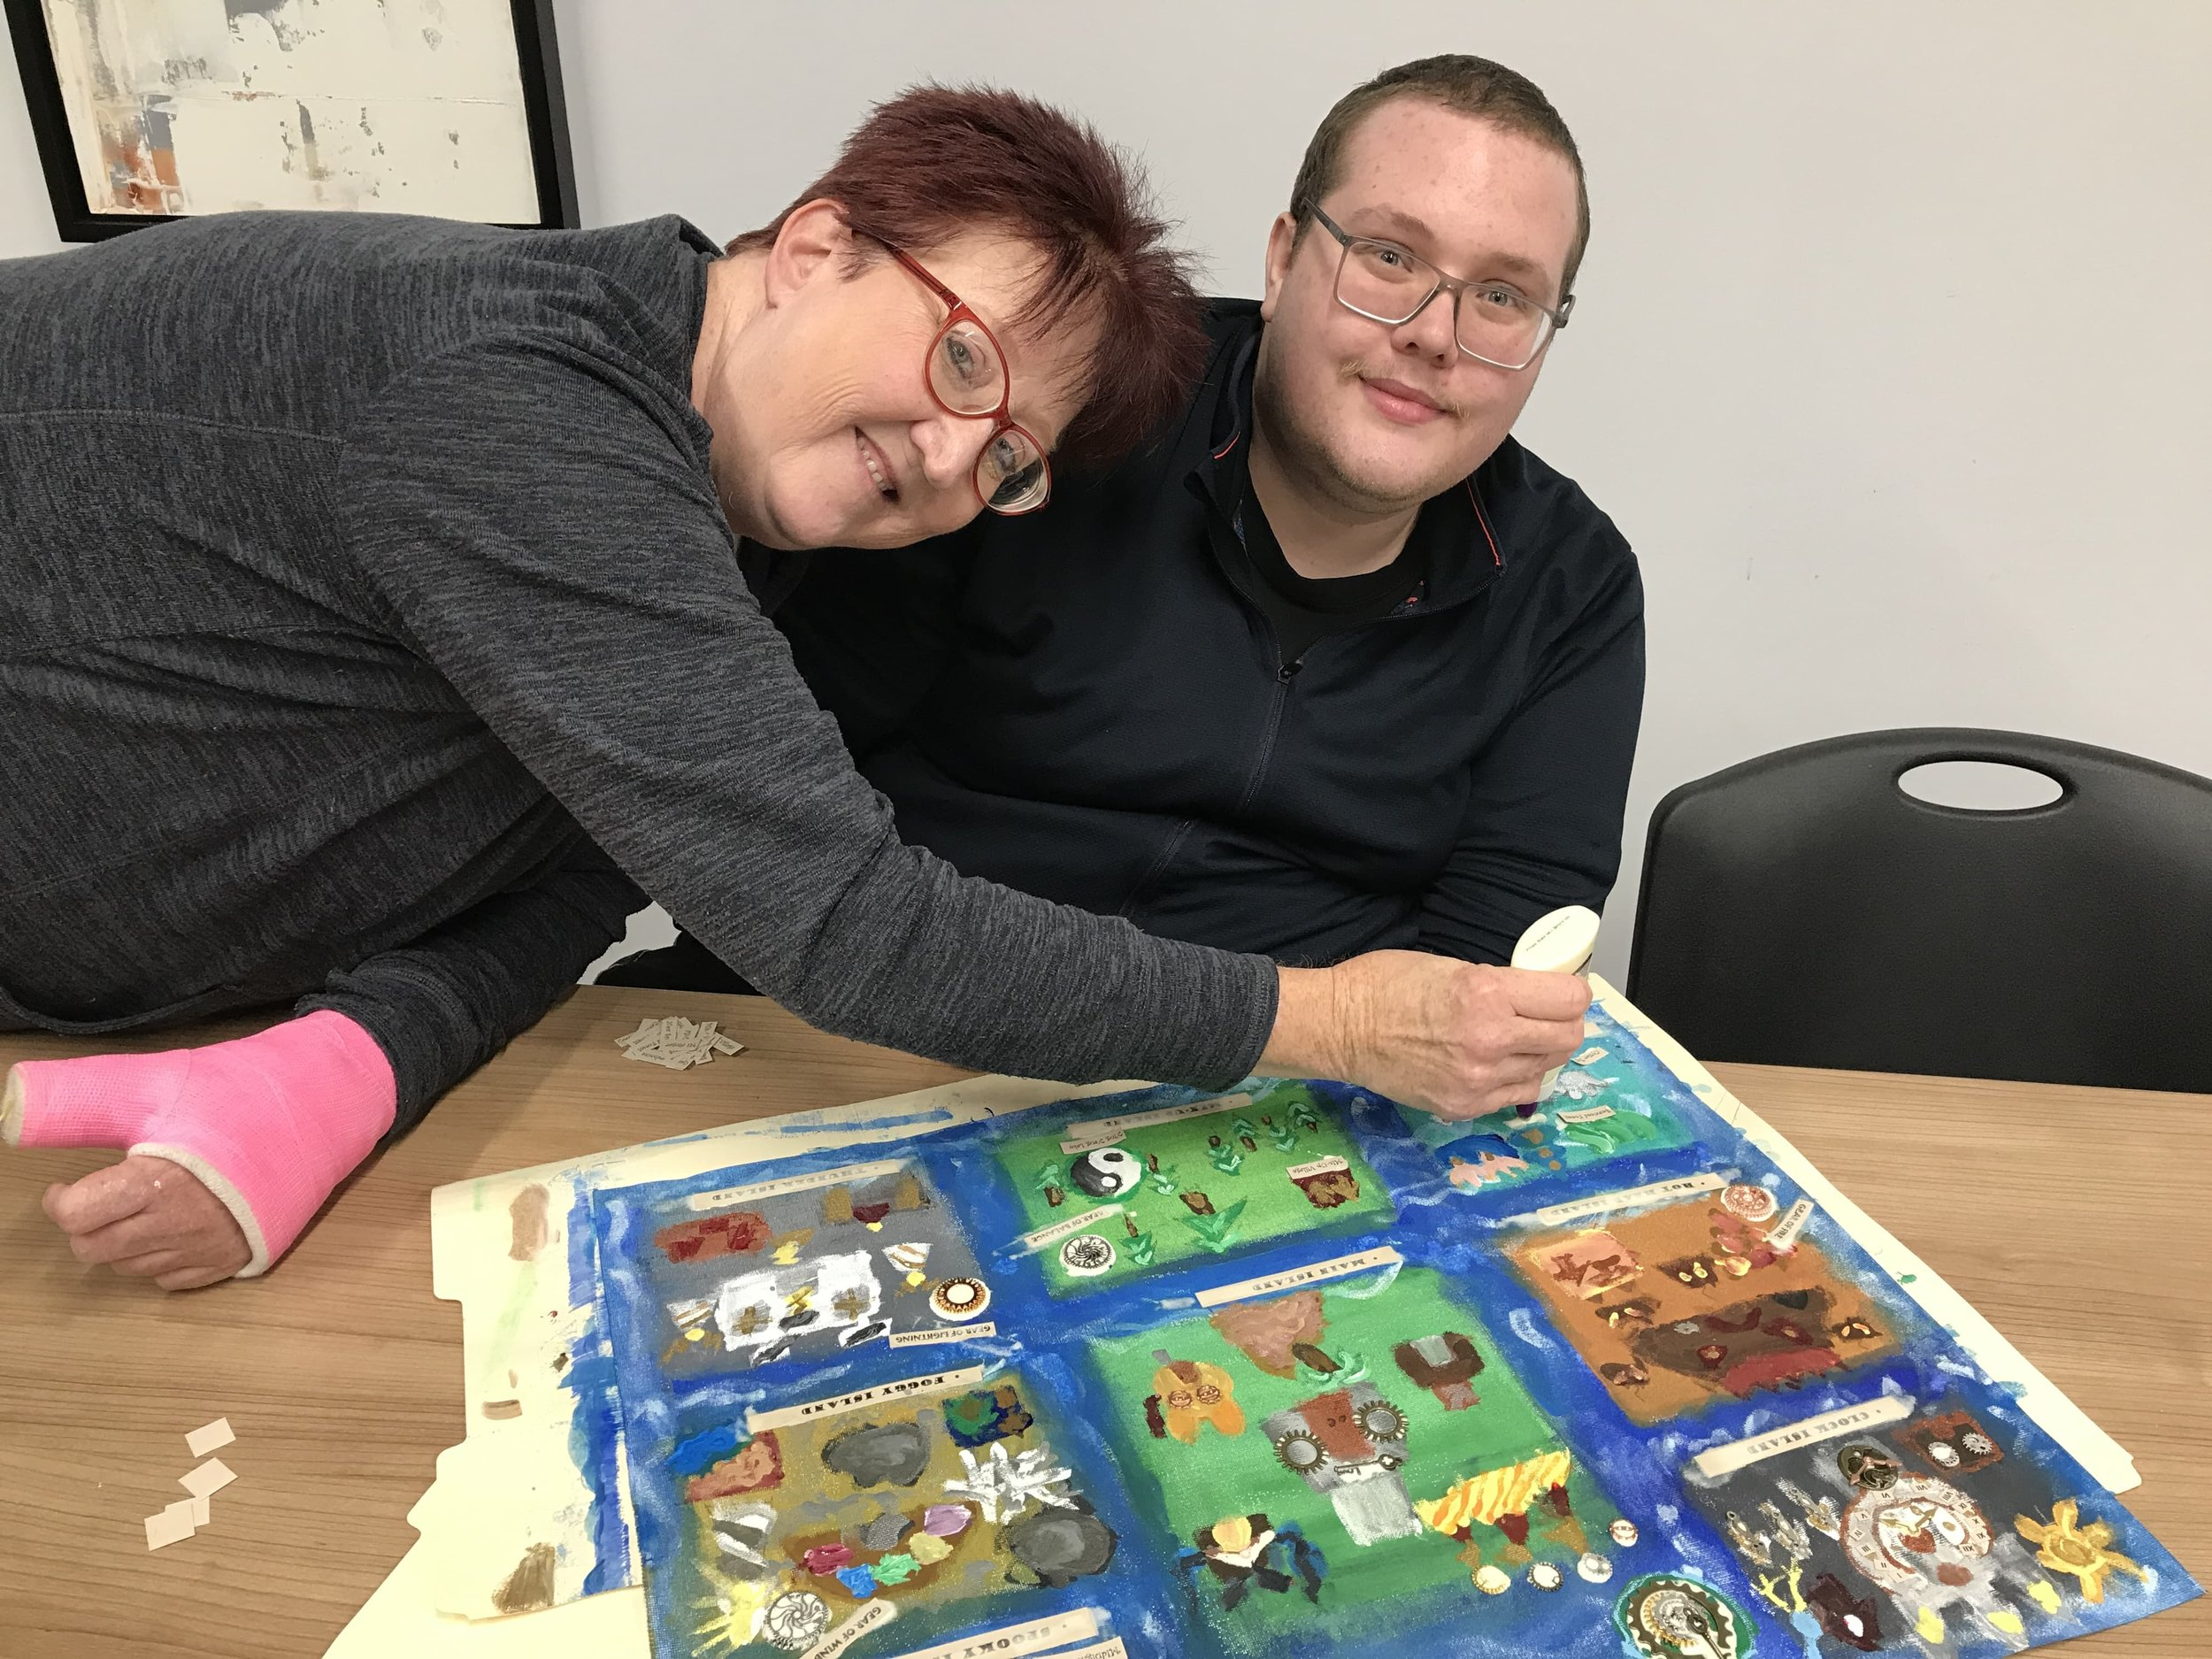 Austin and his mom, my sister, Cherie - The final hours! Austin engages his mom's help to apply the glitter accents, and to attach the metal gears on his mixed media map.